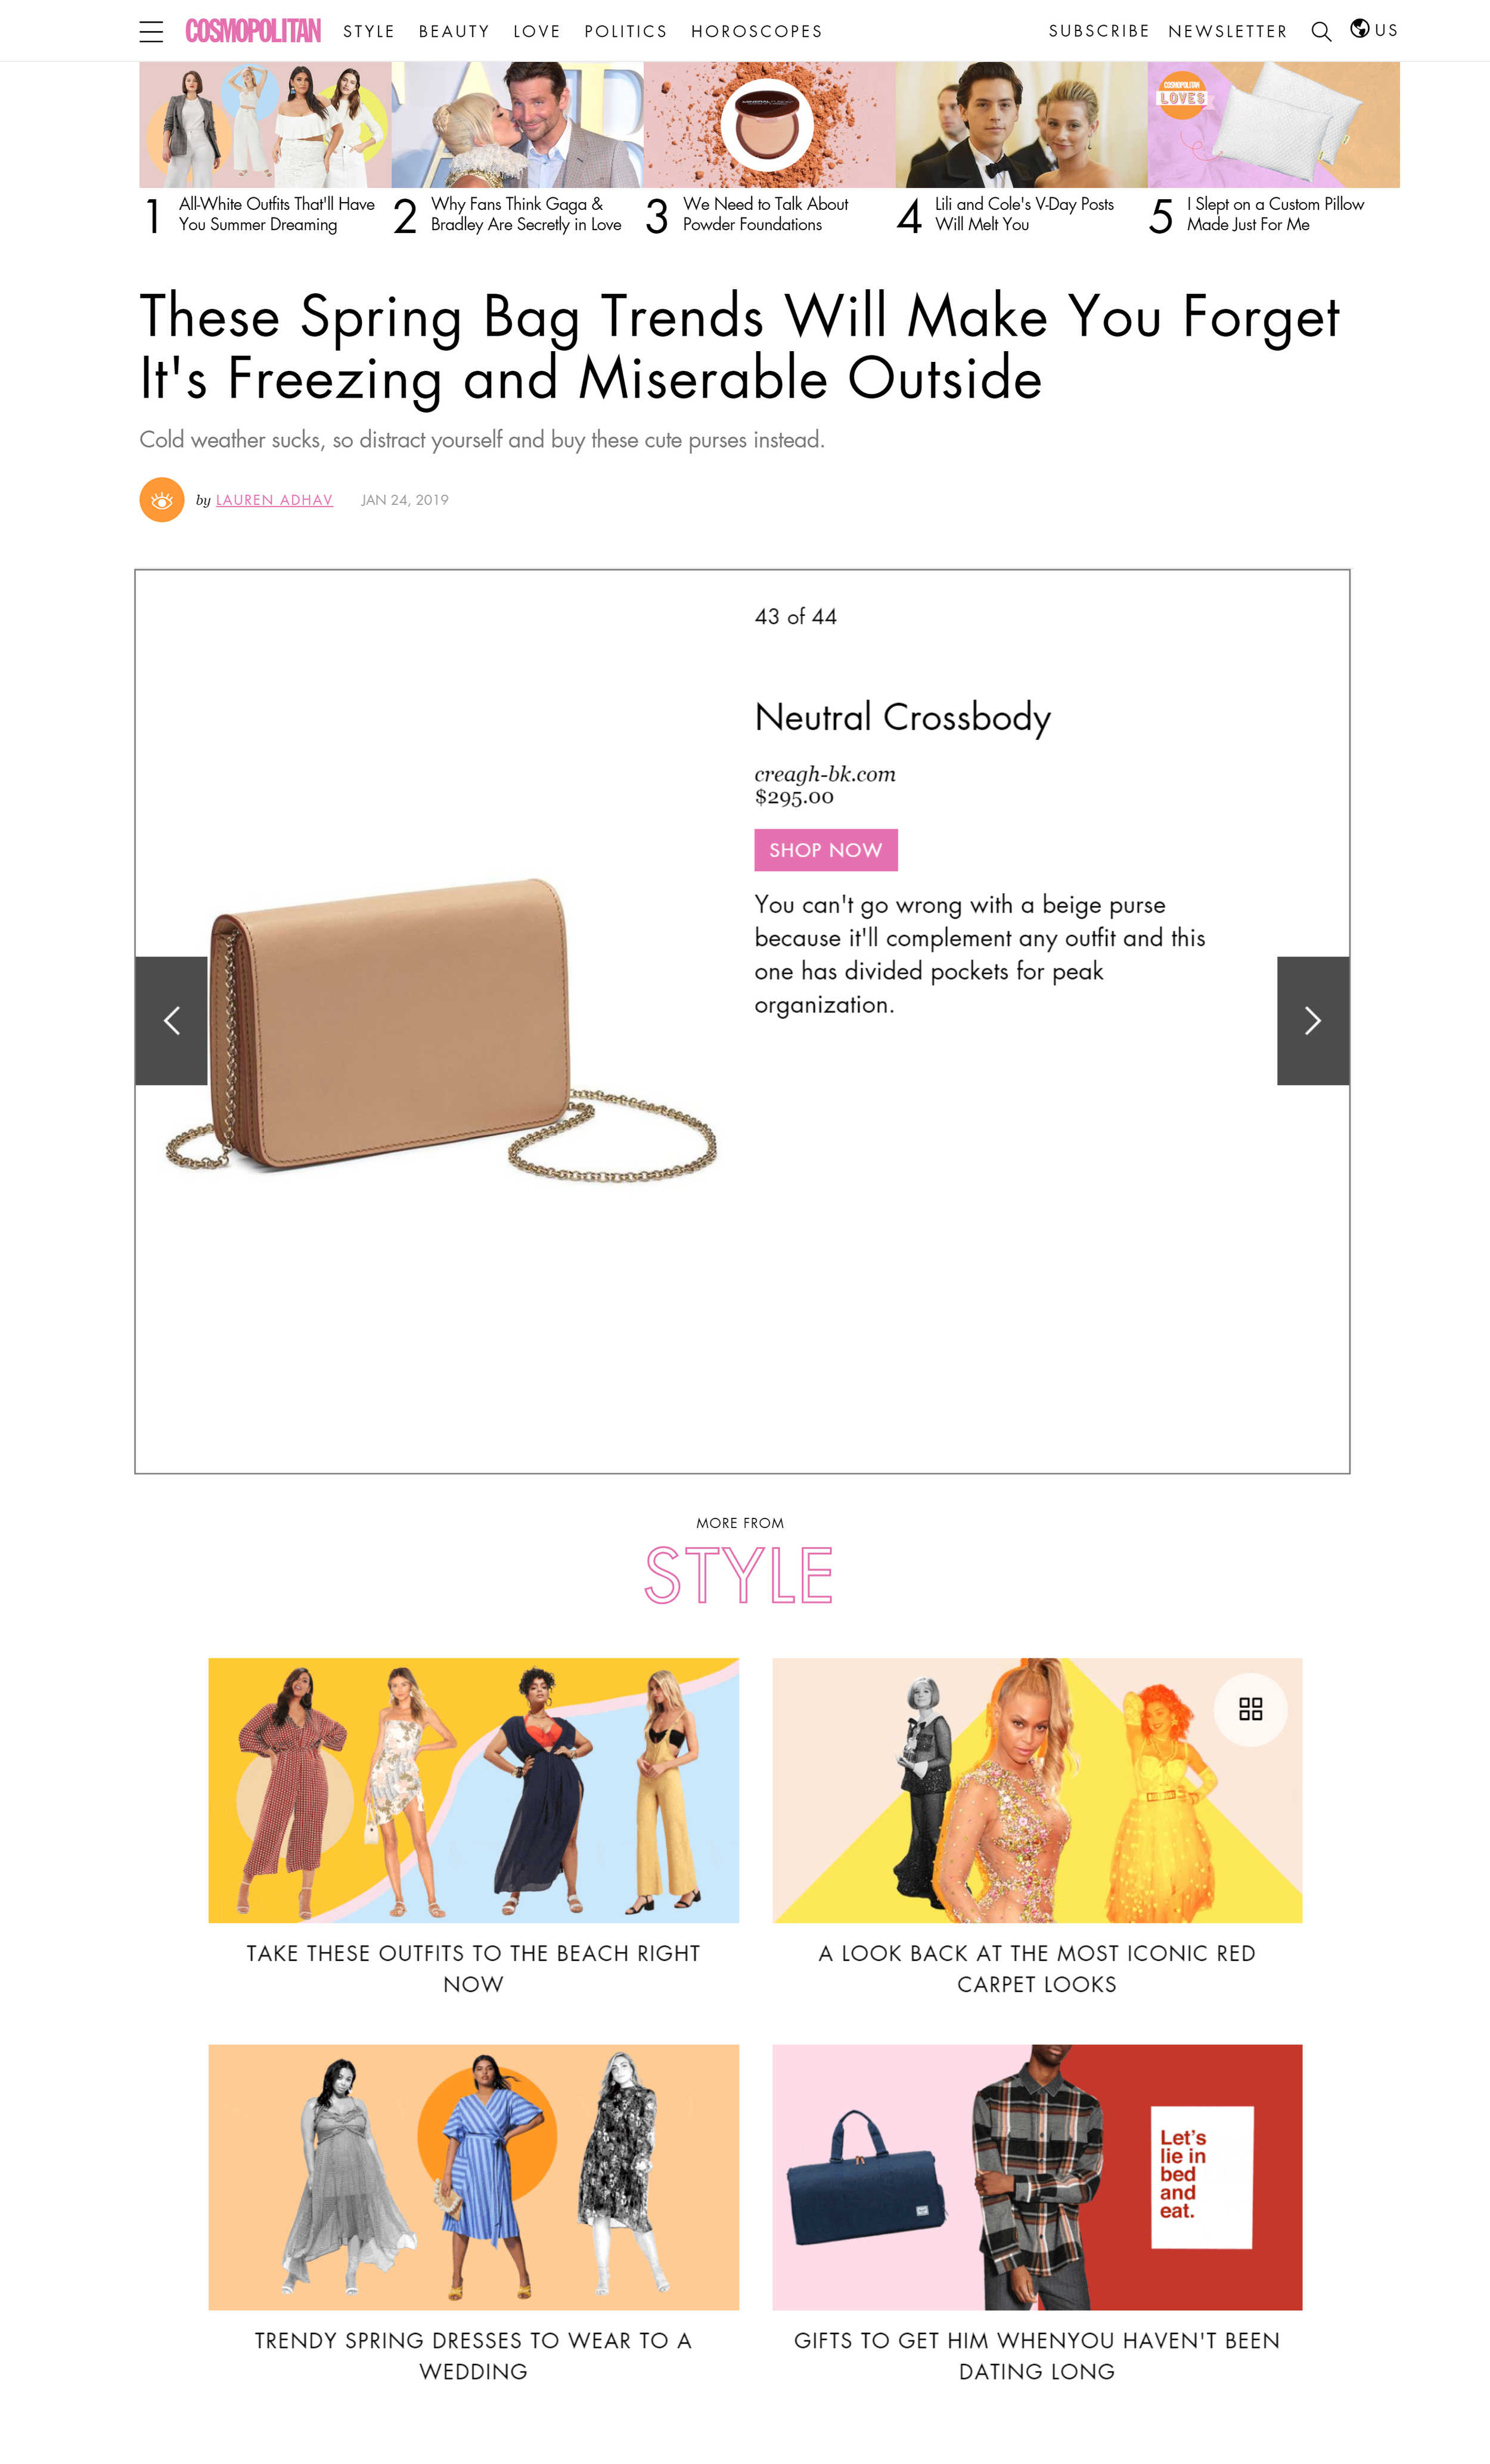 screencapture-cosmopolitan-style-beauty-fashion-g23421862-spring-bag-trends-2019-2019-02-15-07_41_59.png